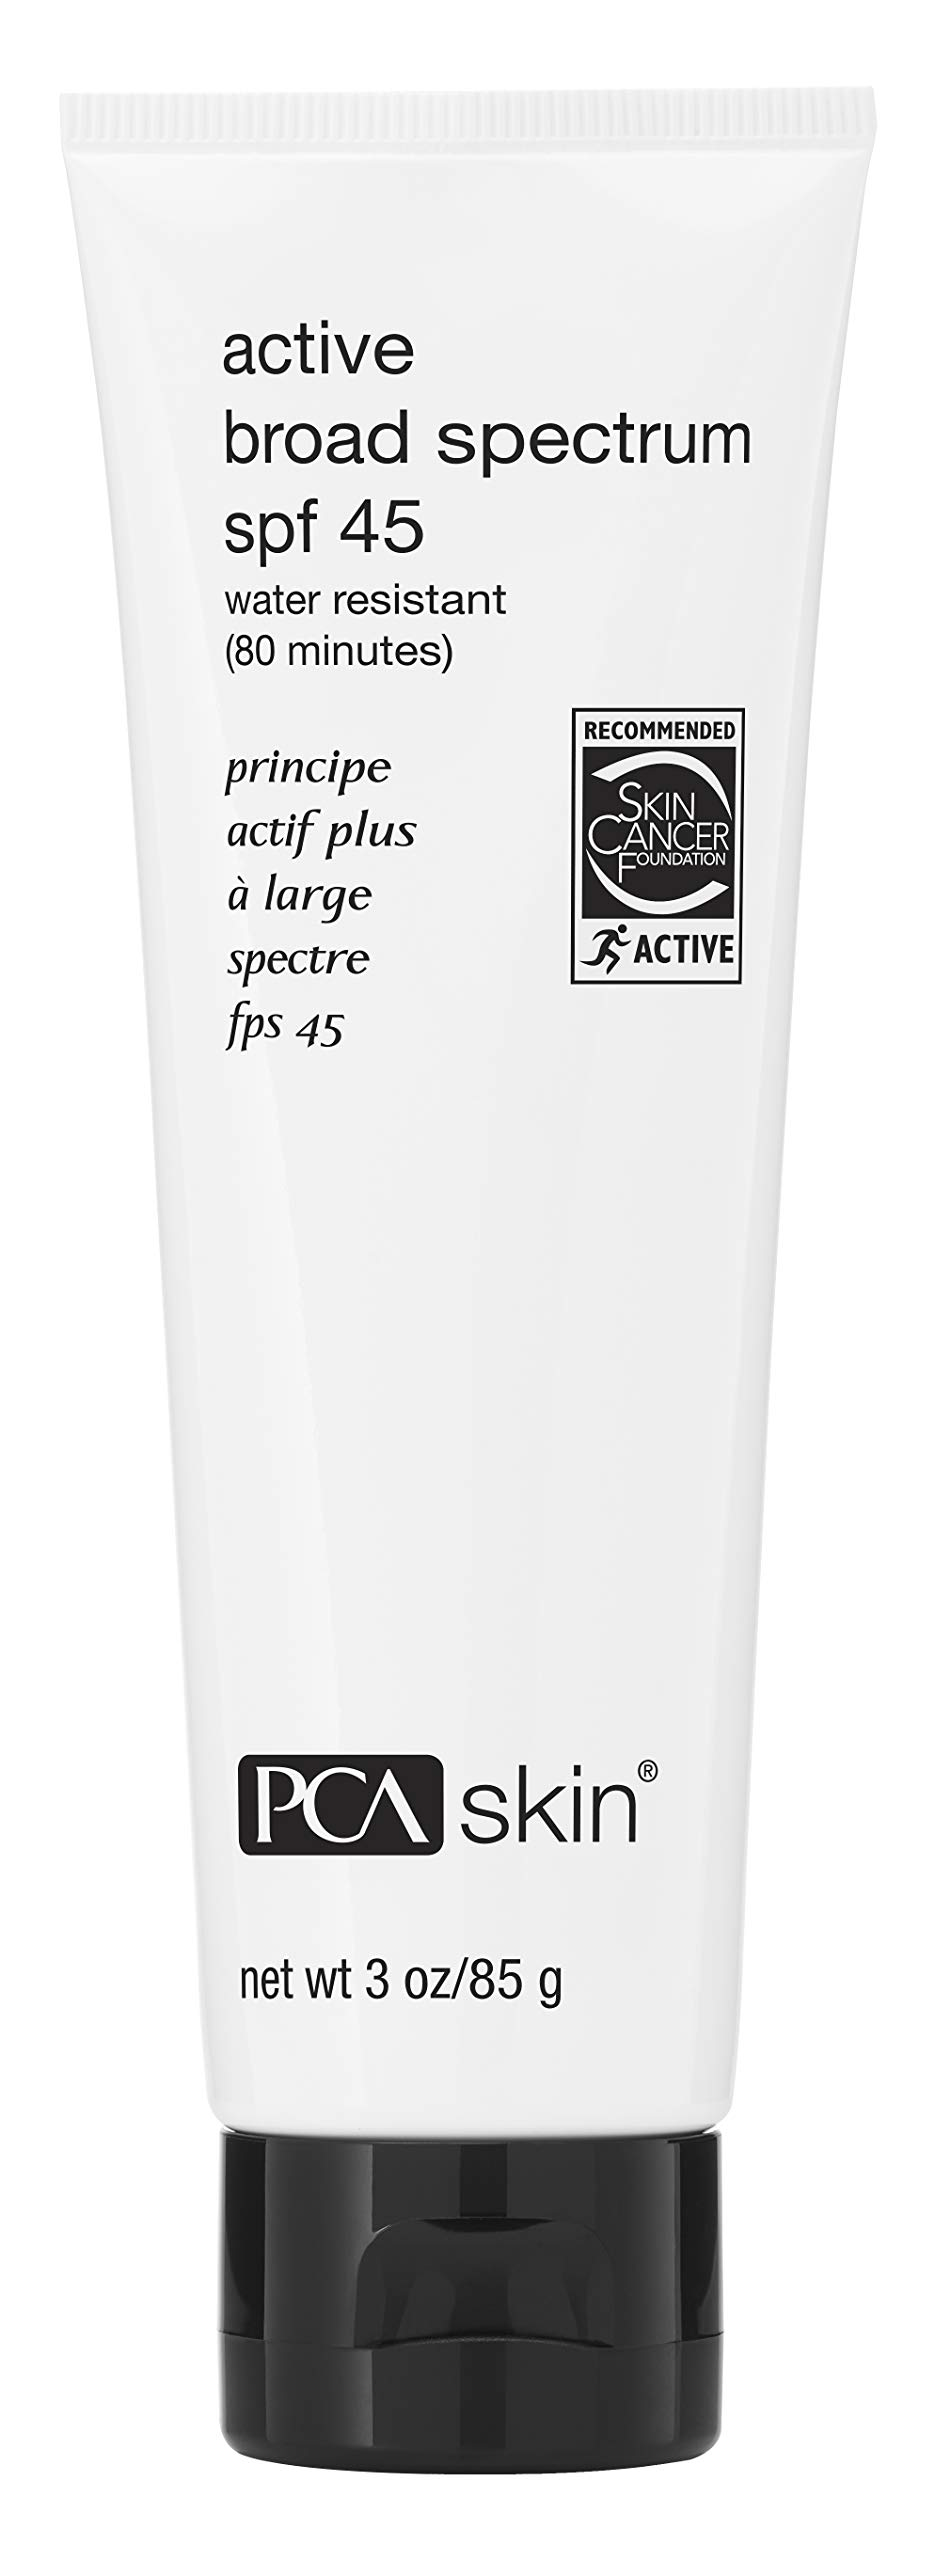 PCA SKIN Active Broad Spectrum SPF 45: Water Resistant, Zinc Oxide Sport Sunscreen, UVA/UVB Protection, 3 fluid ounce